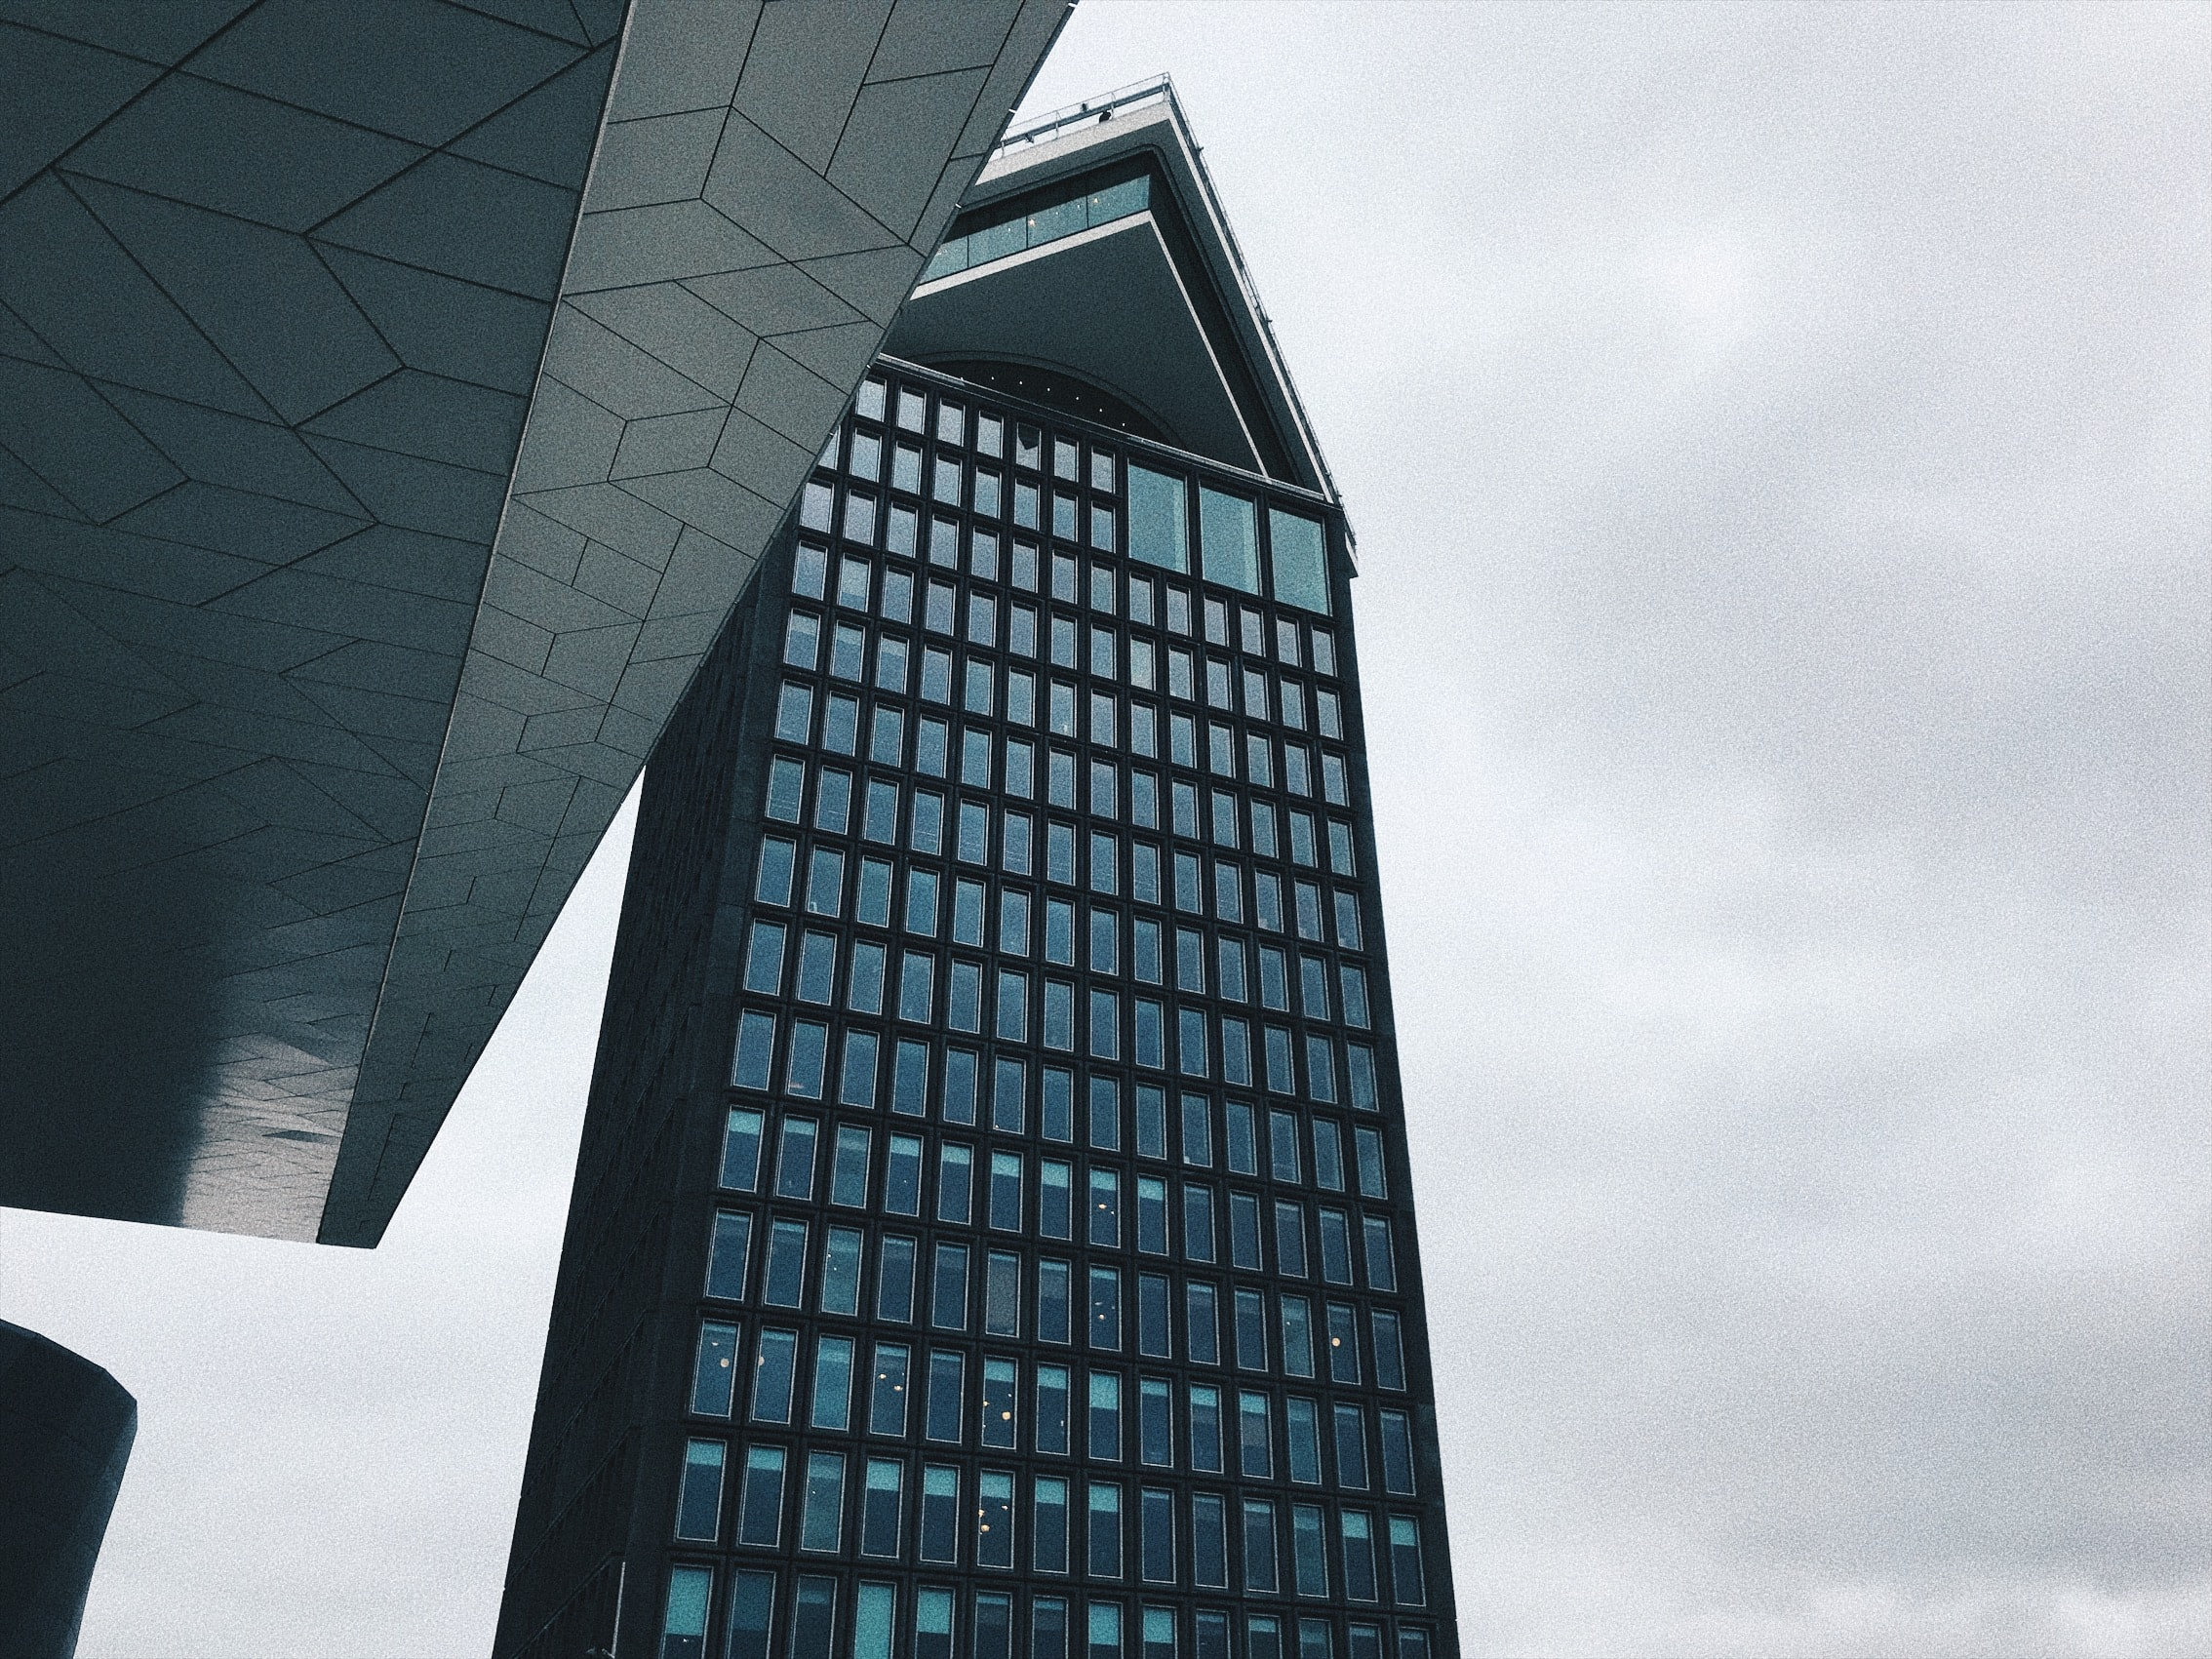 photo of black concrete building with glass under cloudy sky